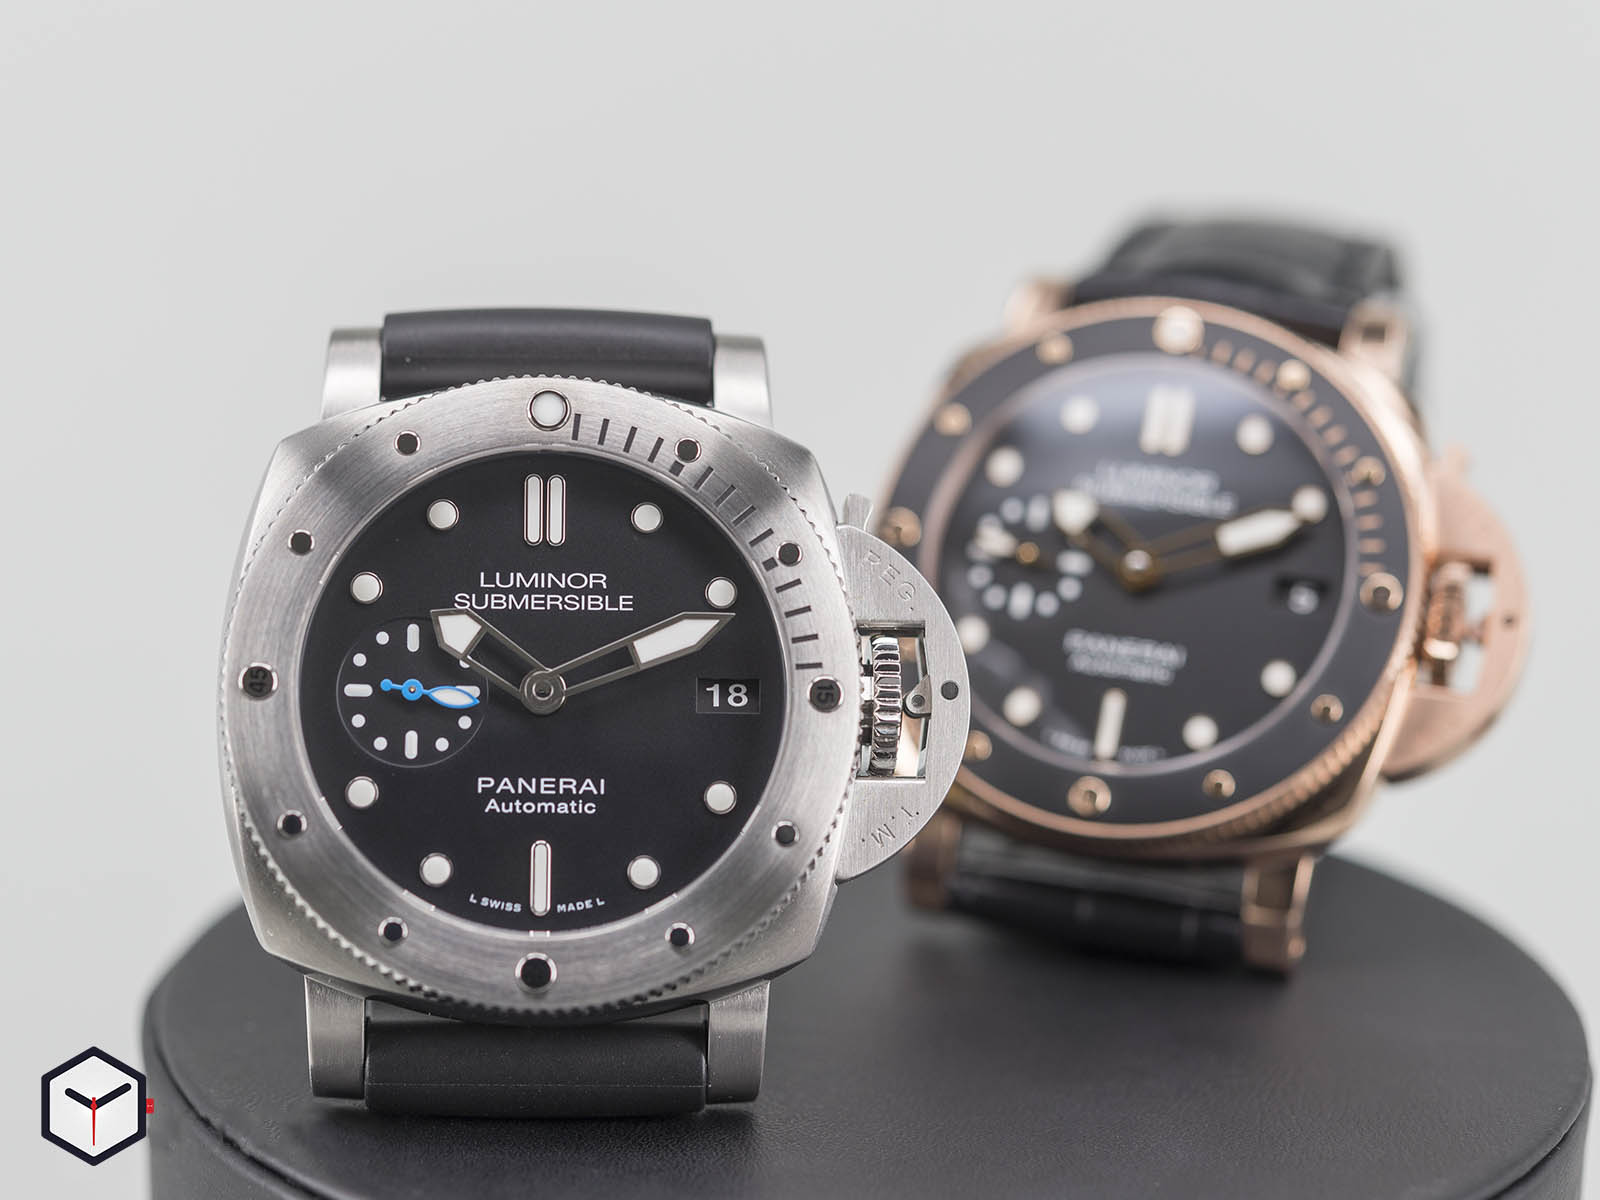 pam00682-pam00684-panerai-luminor-1950-submersible-5.jpg